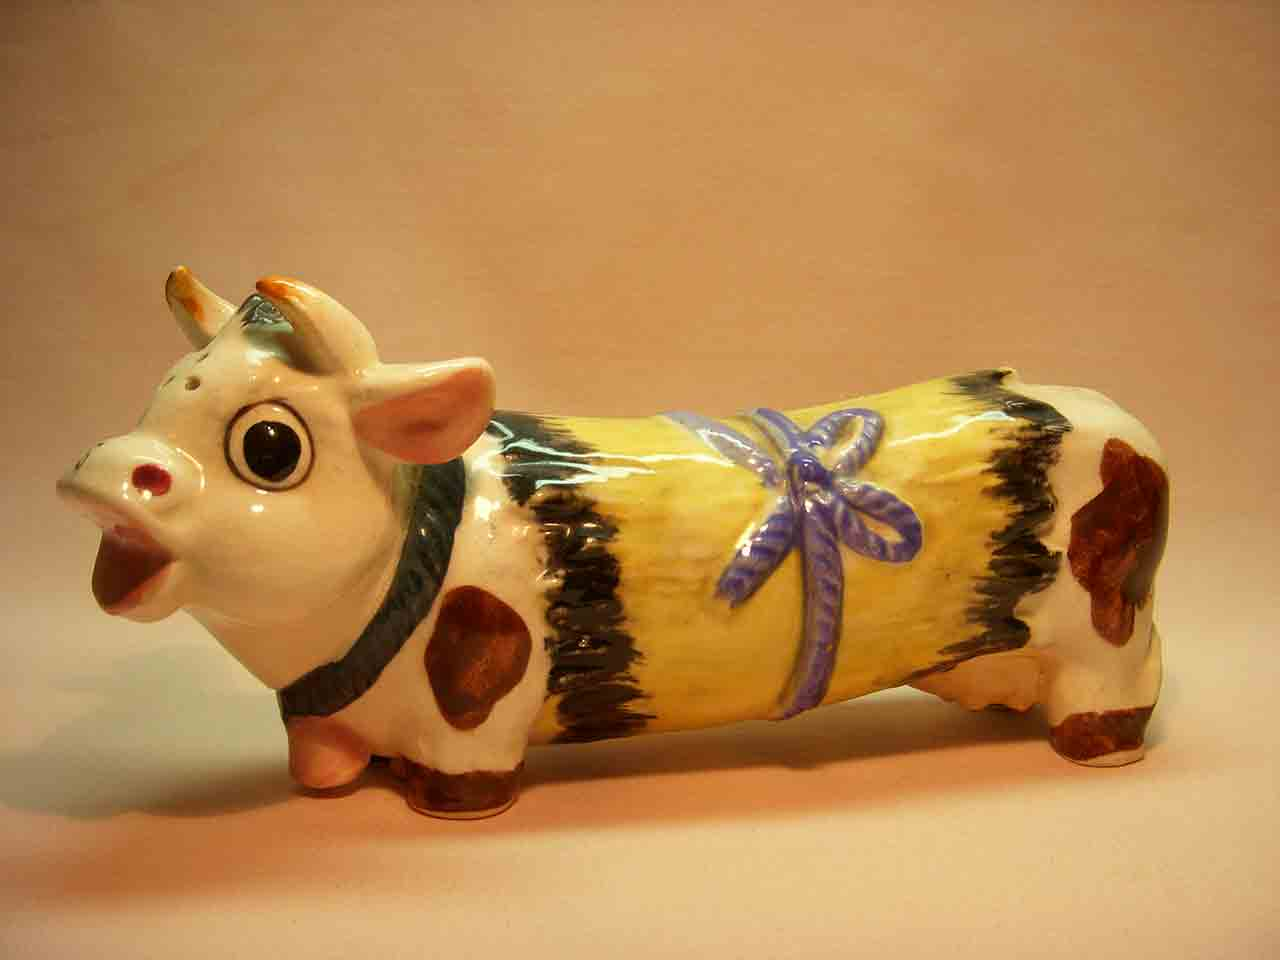 Long cow one piece salt and pepper shaker